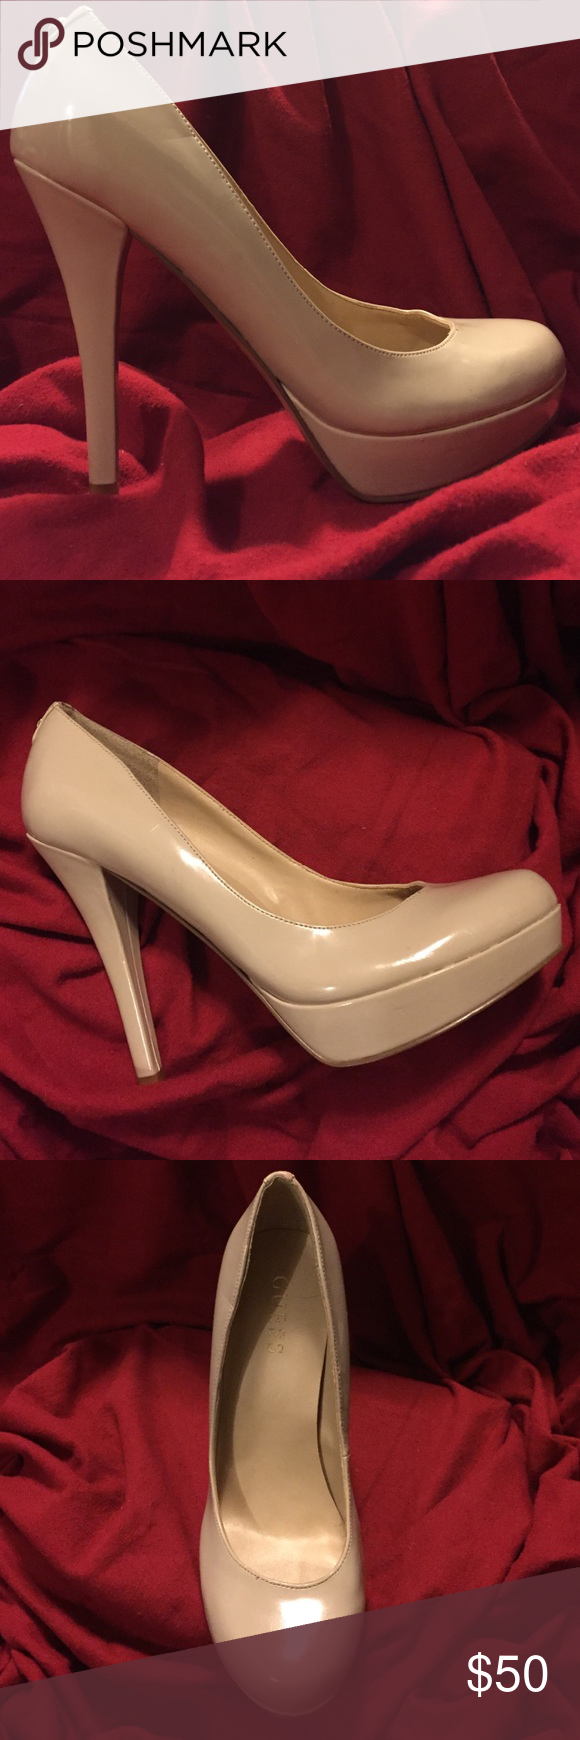 Guess cream heels, perfect condition Guess brand cream heels. Worn once, no damage, perfect condition. Size 8 Guess Shoes Heels